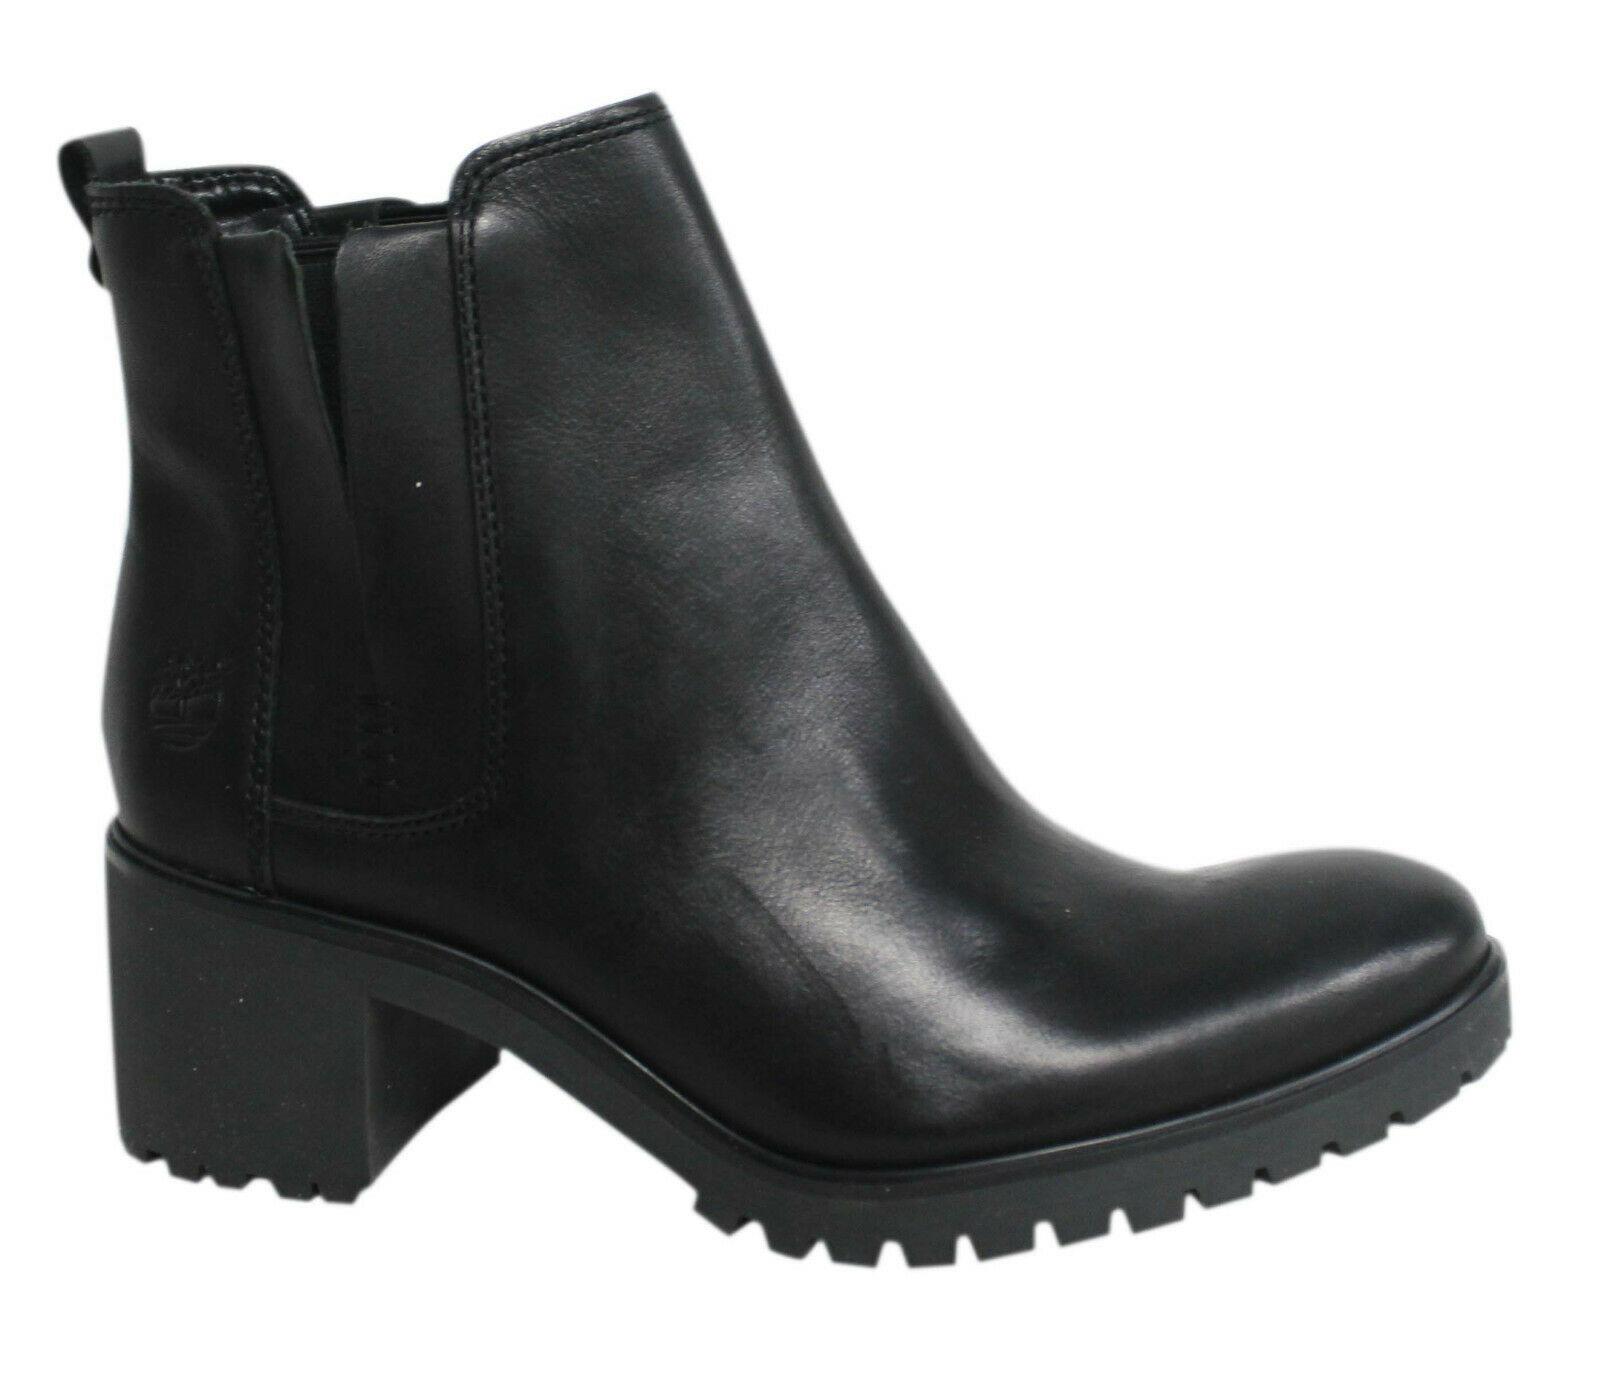 Details about Timberland Averly Slip On Black Leather Womens Heeled Chelsea Boots A11DF B83A